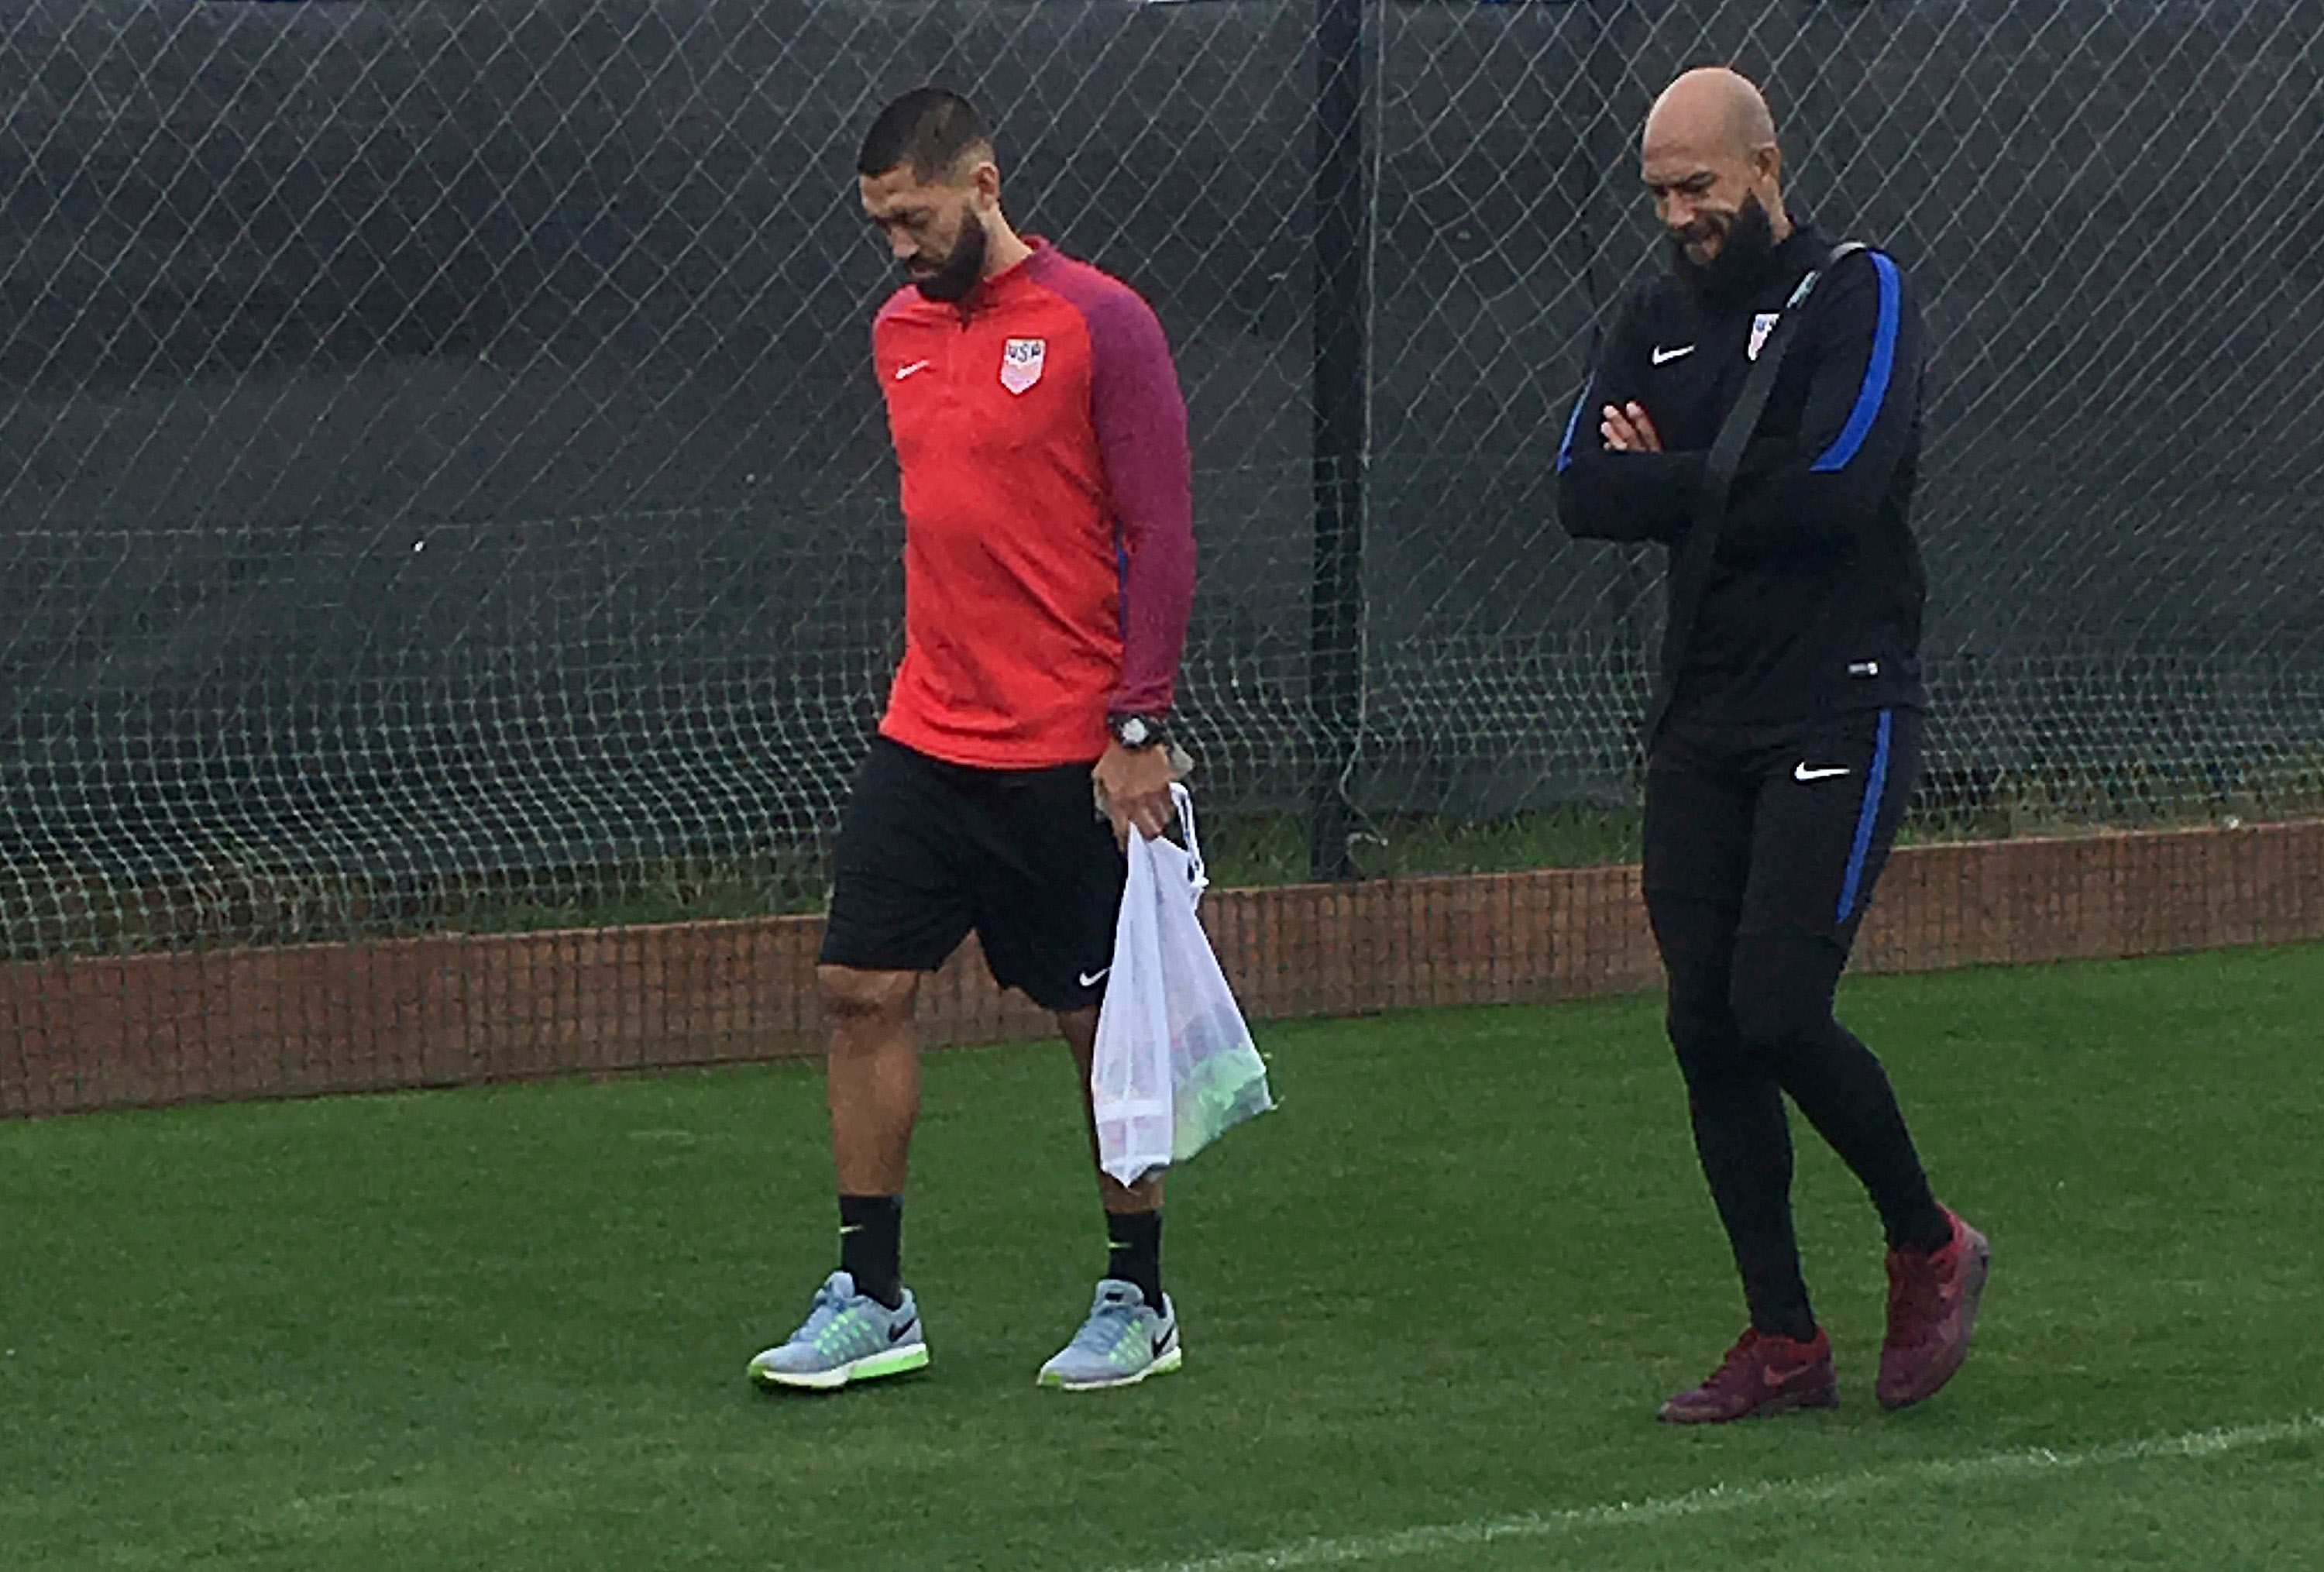 In this Friday, March 17, 2017, photo, U.S. goalkeeper Tim Howard, right, walks with forward Clint Dempsey on a soccer practice field in San Jose, Calif. The team will play its first qualifier against Honduras in San Jose on Friday, March 24, 2017. (AP Photo/Janie McCauley)